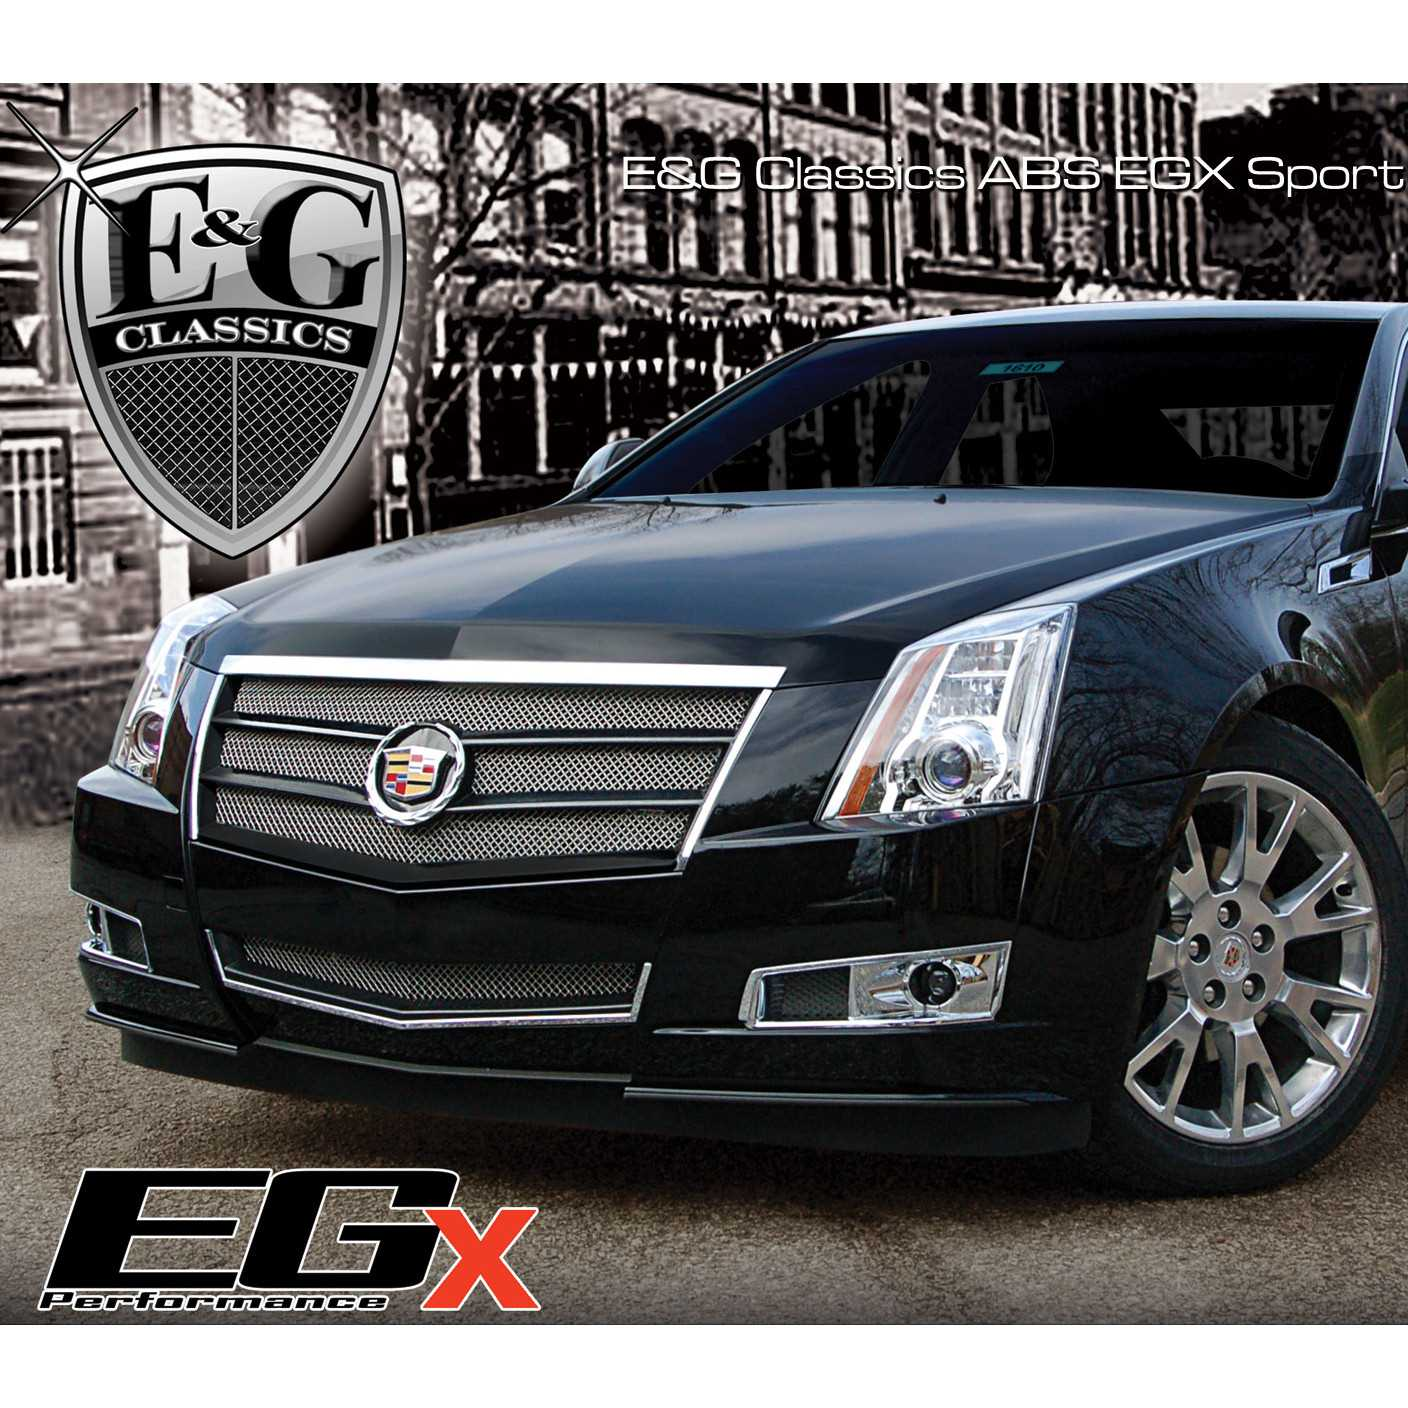 Cadillac Cts 2013 Price: E&G Classics 2008-2013 Cadillac CTS Grille 2Pc Egx Sport Fine Mesh Grille